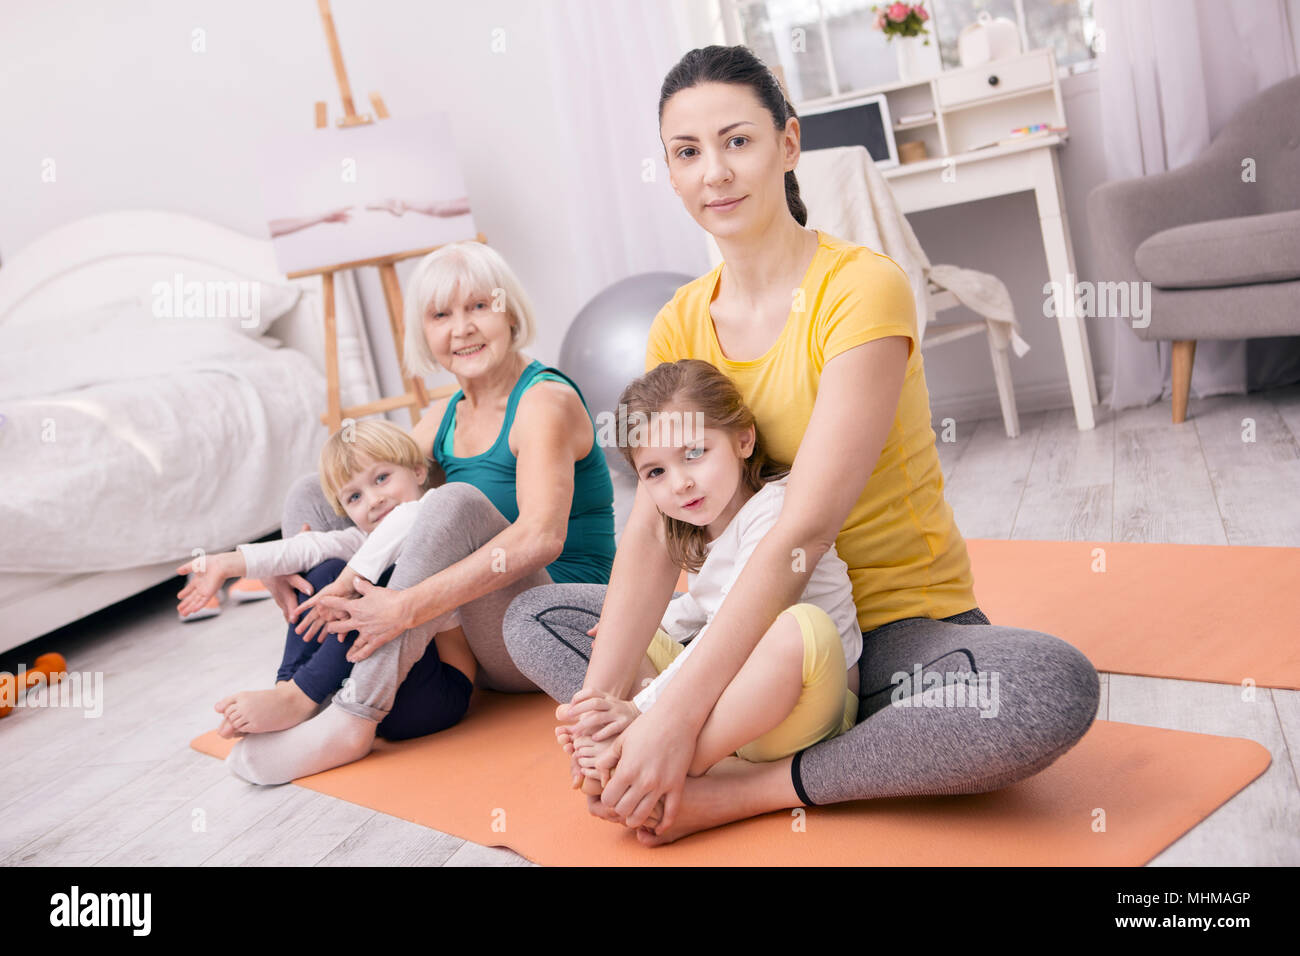 Cheerful women and kids doing yoga Stock Photo: 183000182